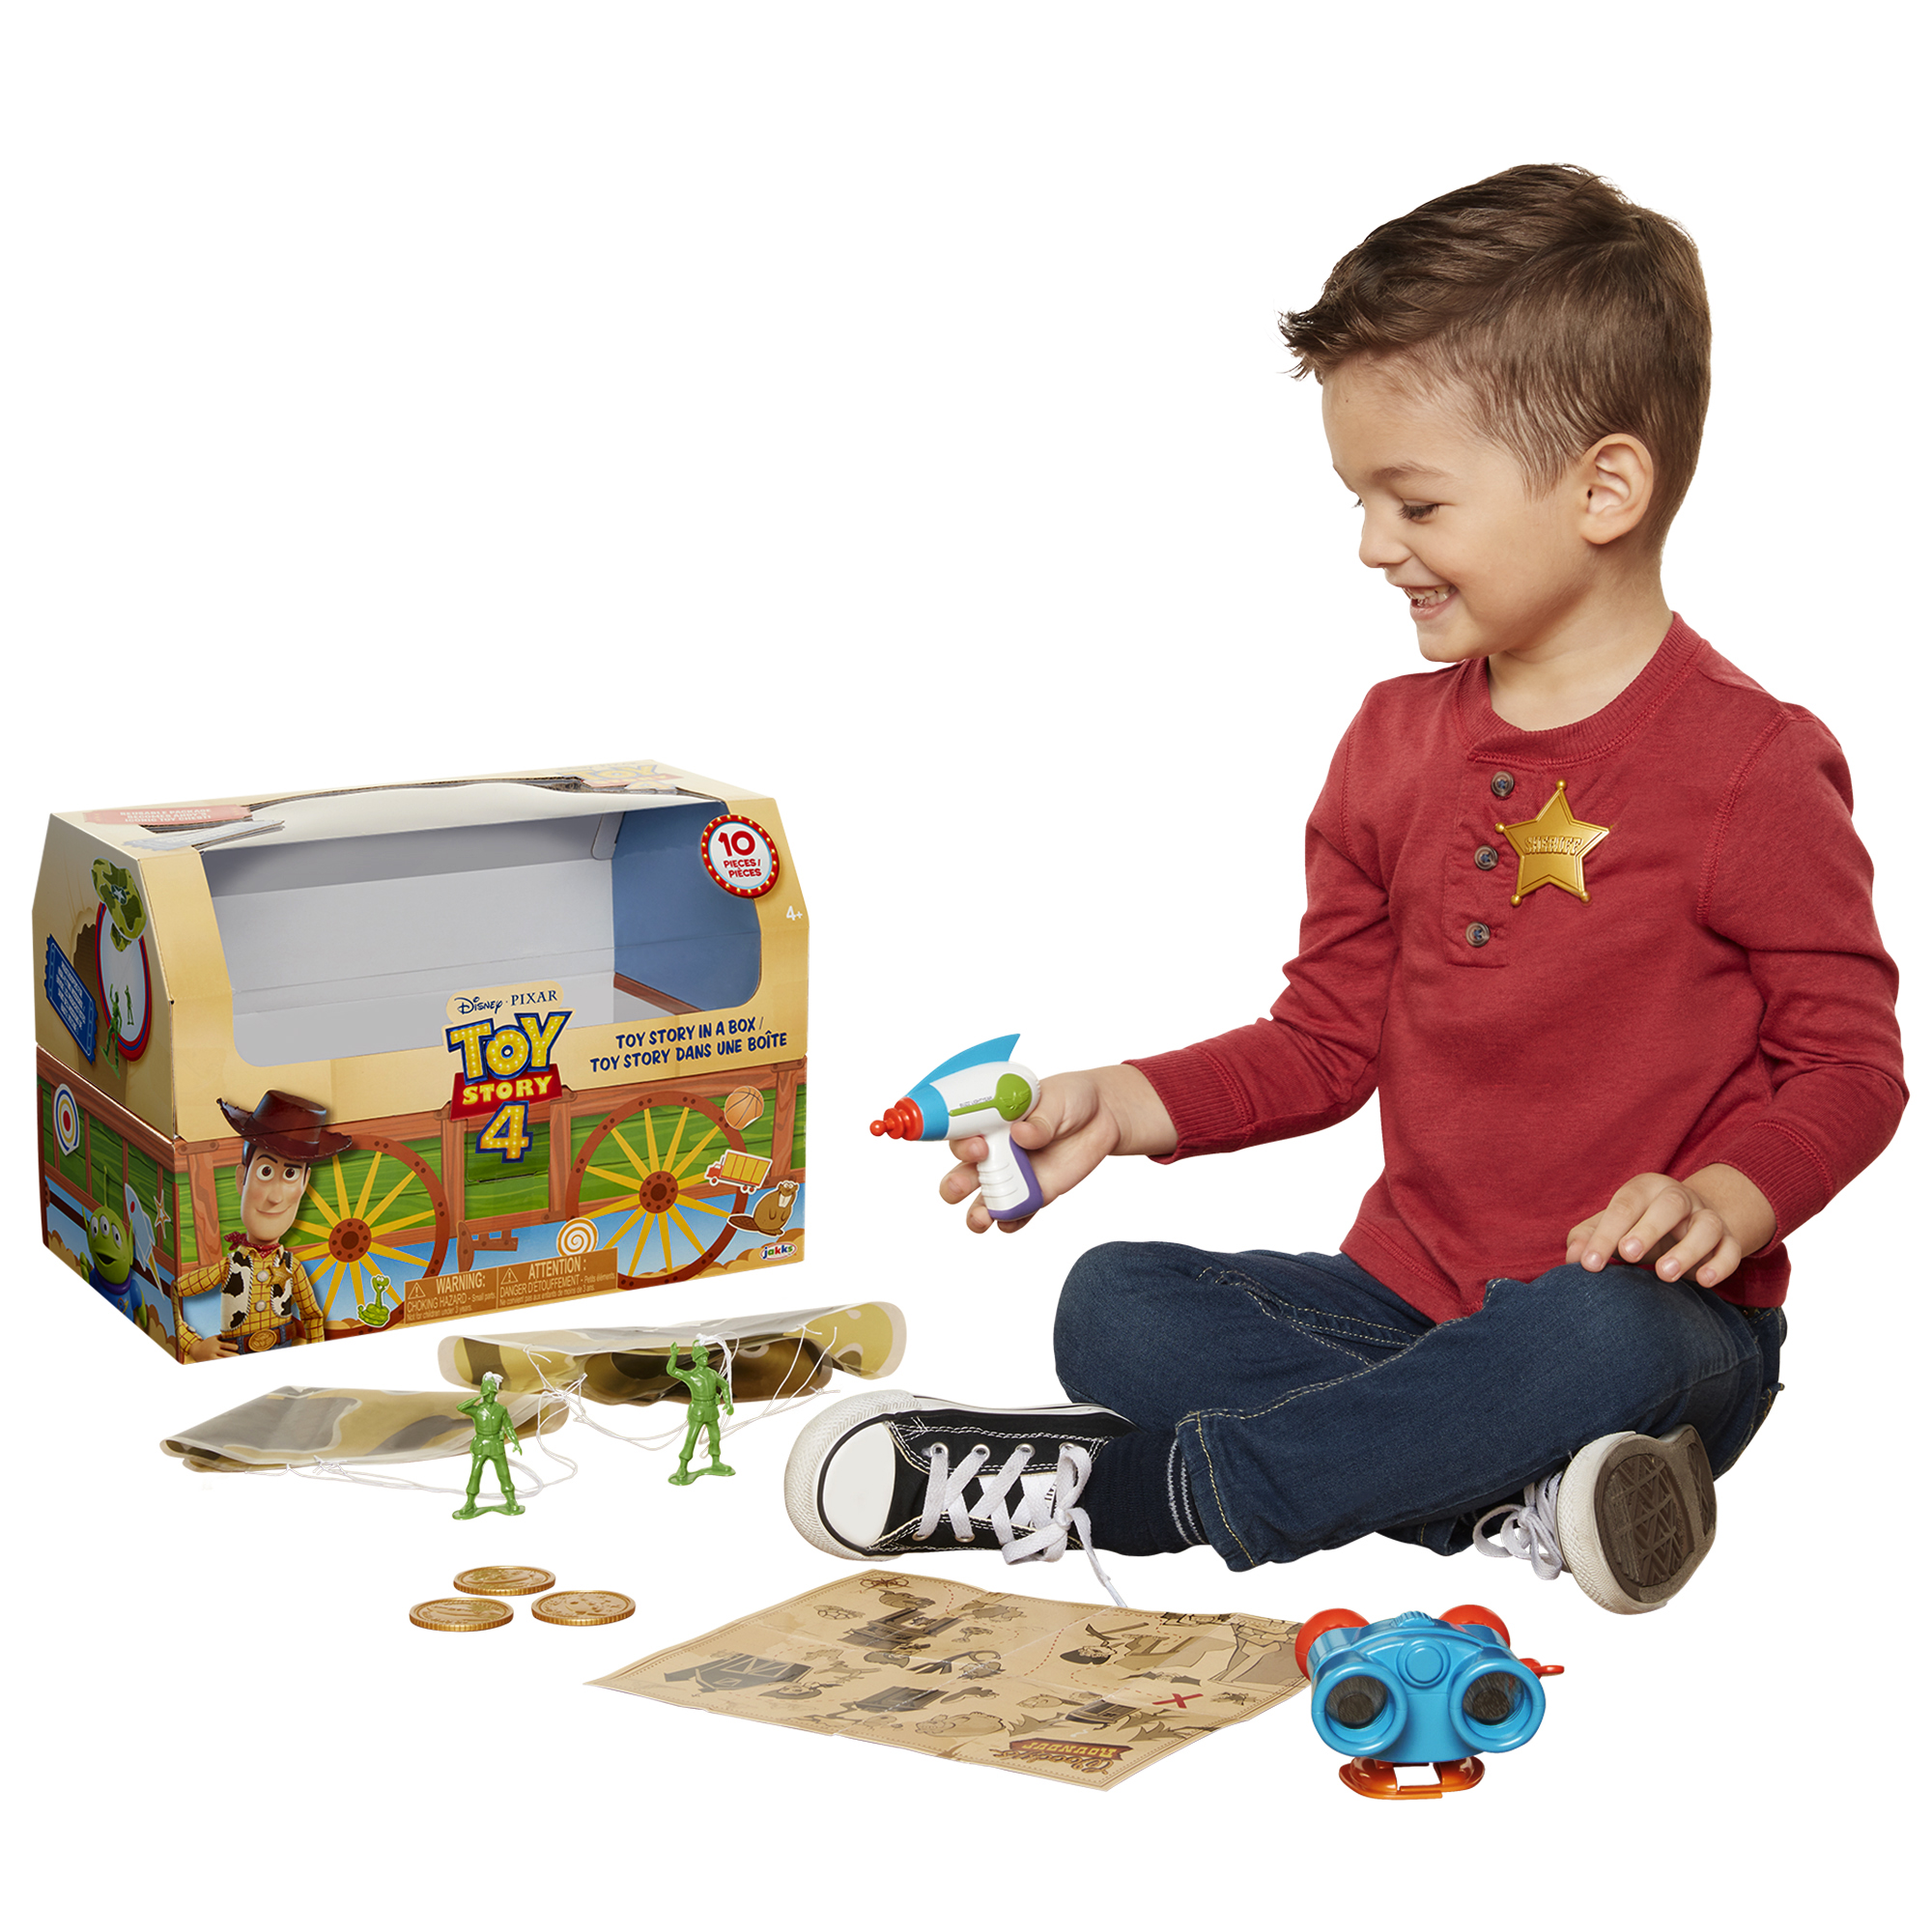 Toy Story 4 Toy Story in a Box